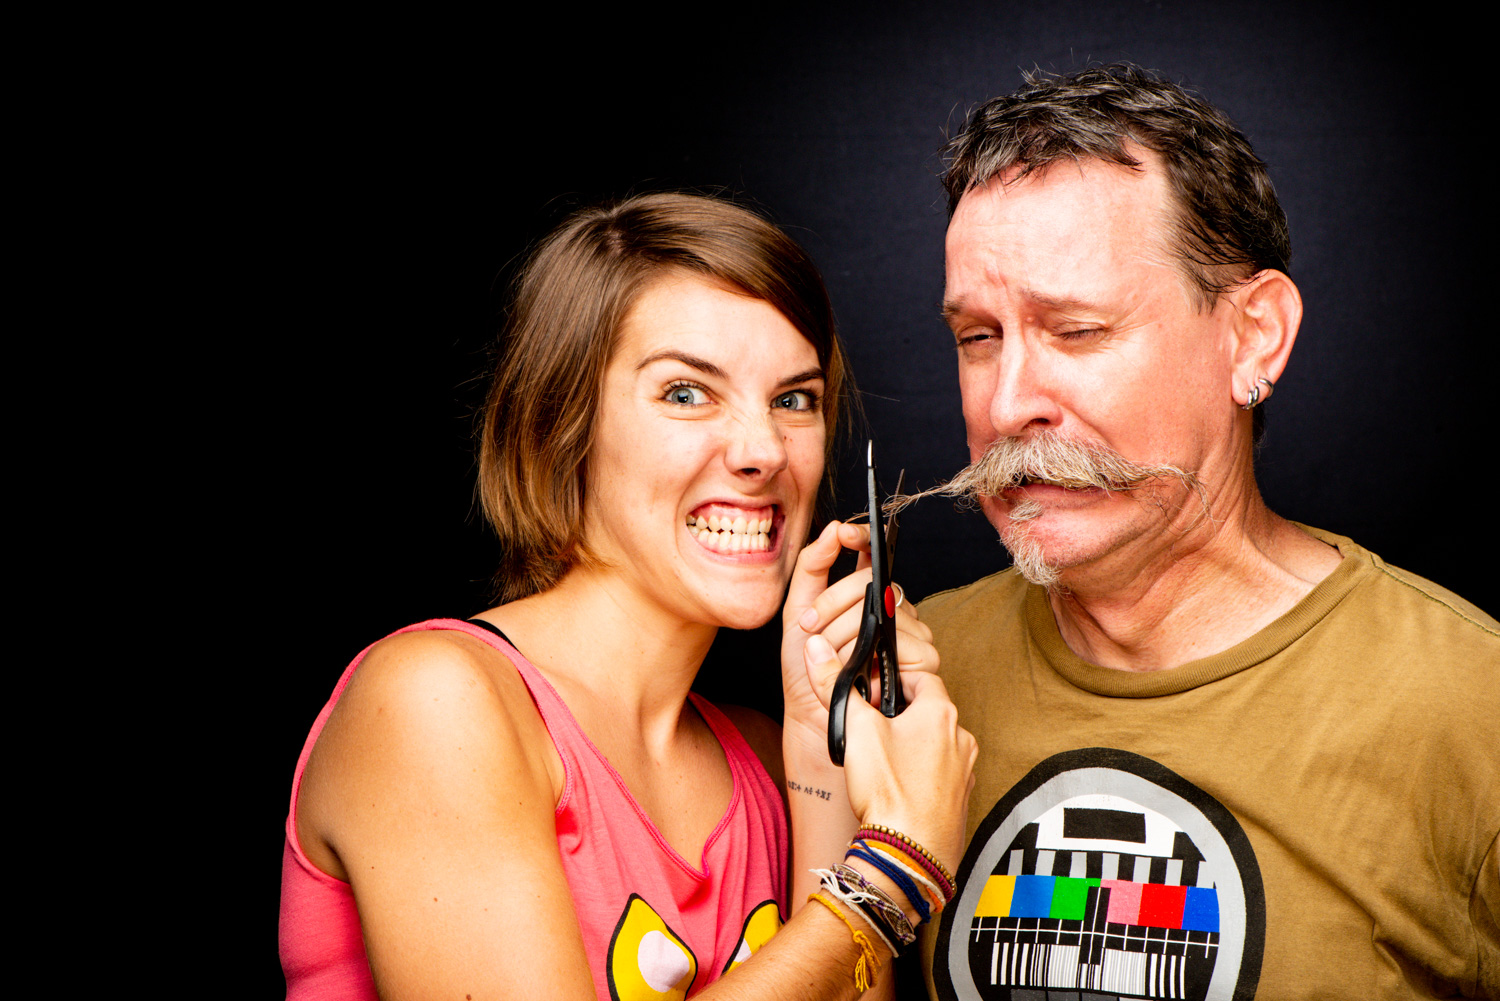 Woman cutting a man's moustache making someone comfortable